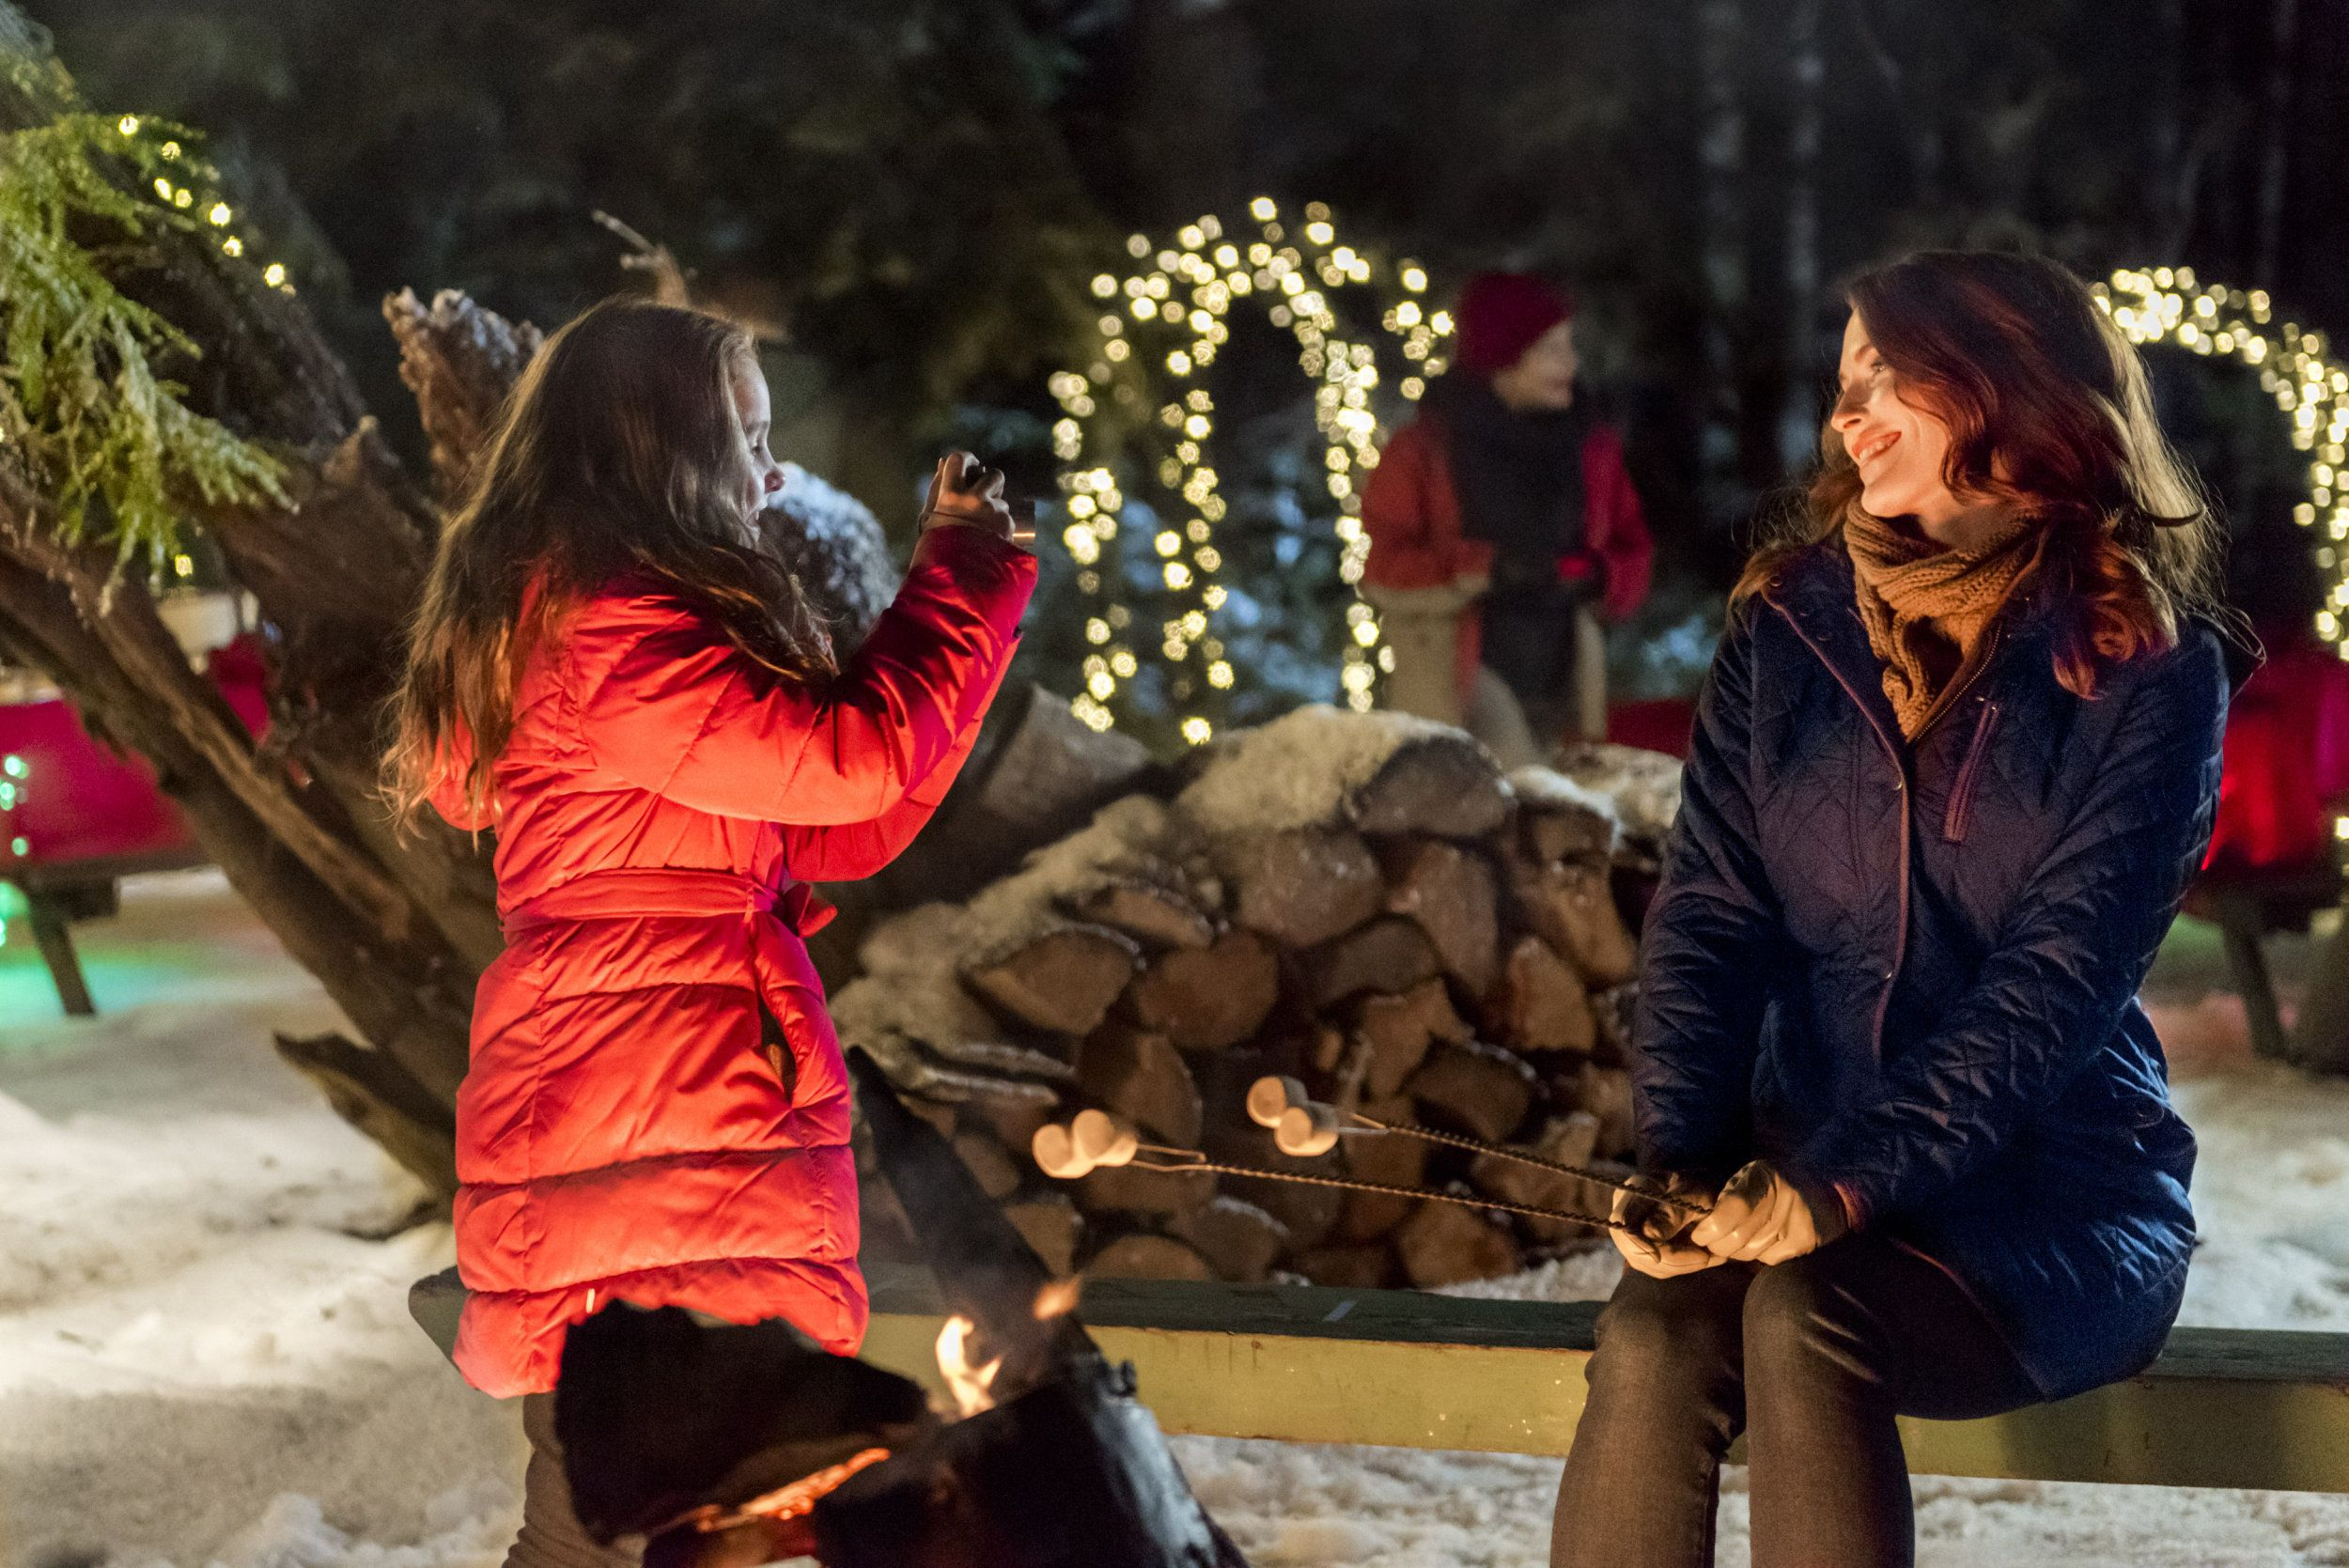 Check out photos from the Hallmark Channel original movie